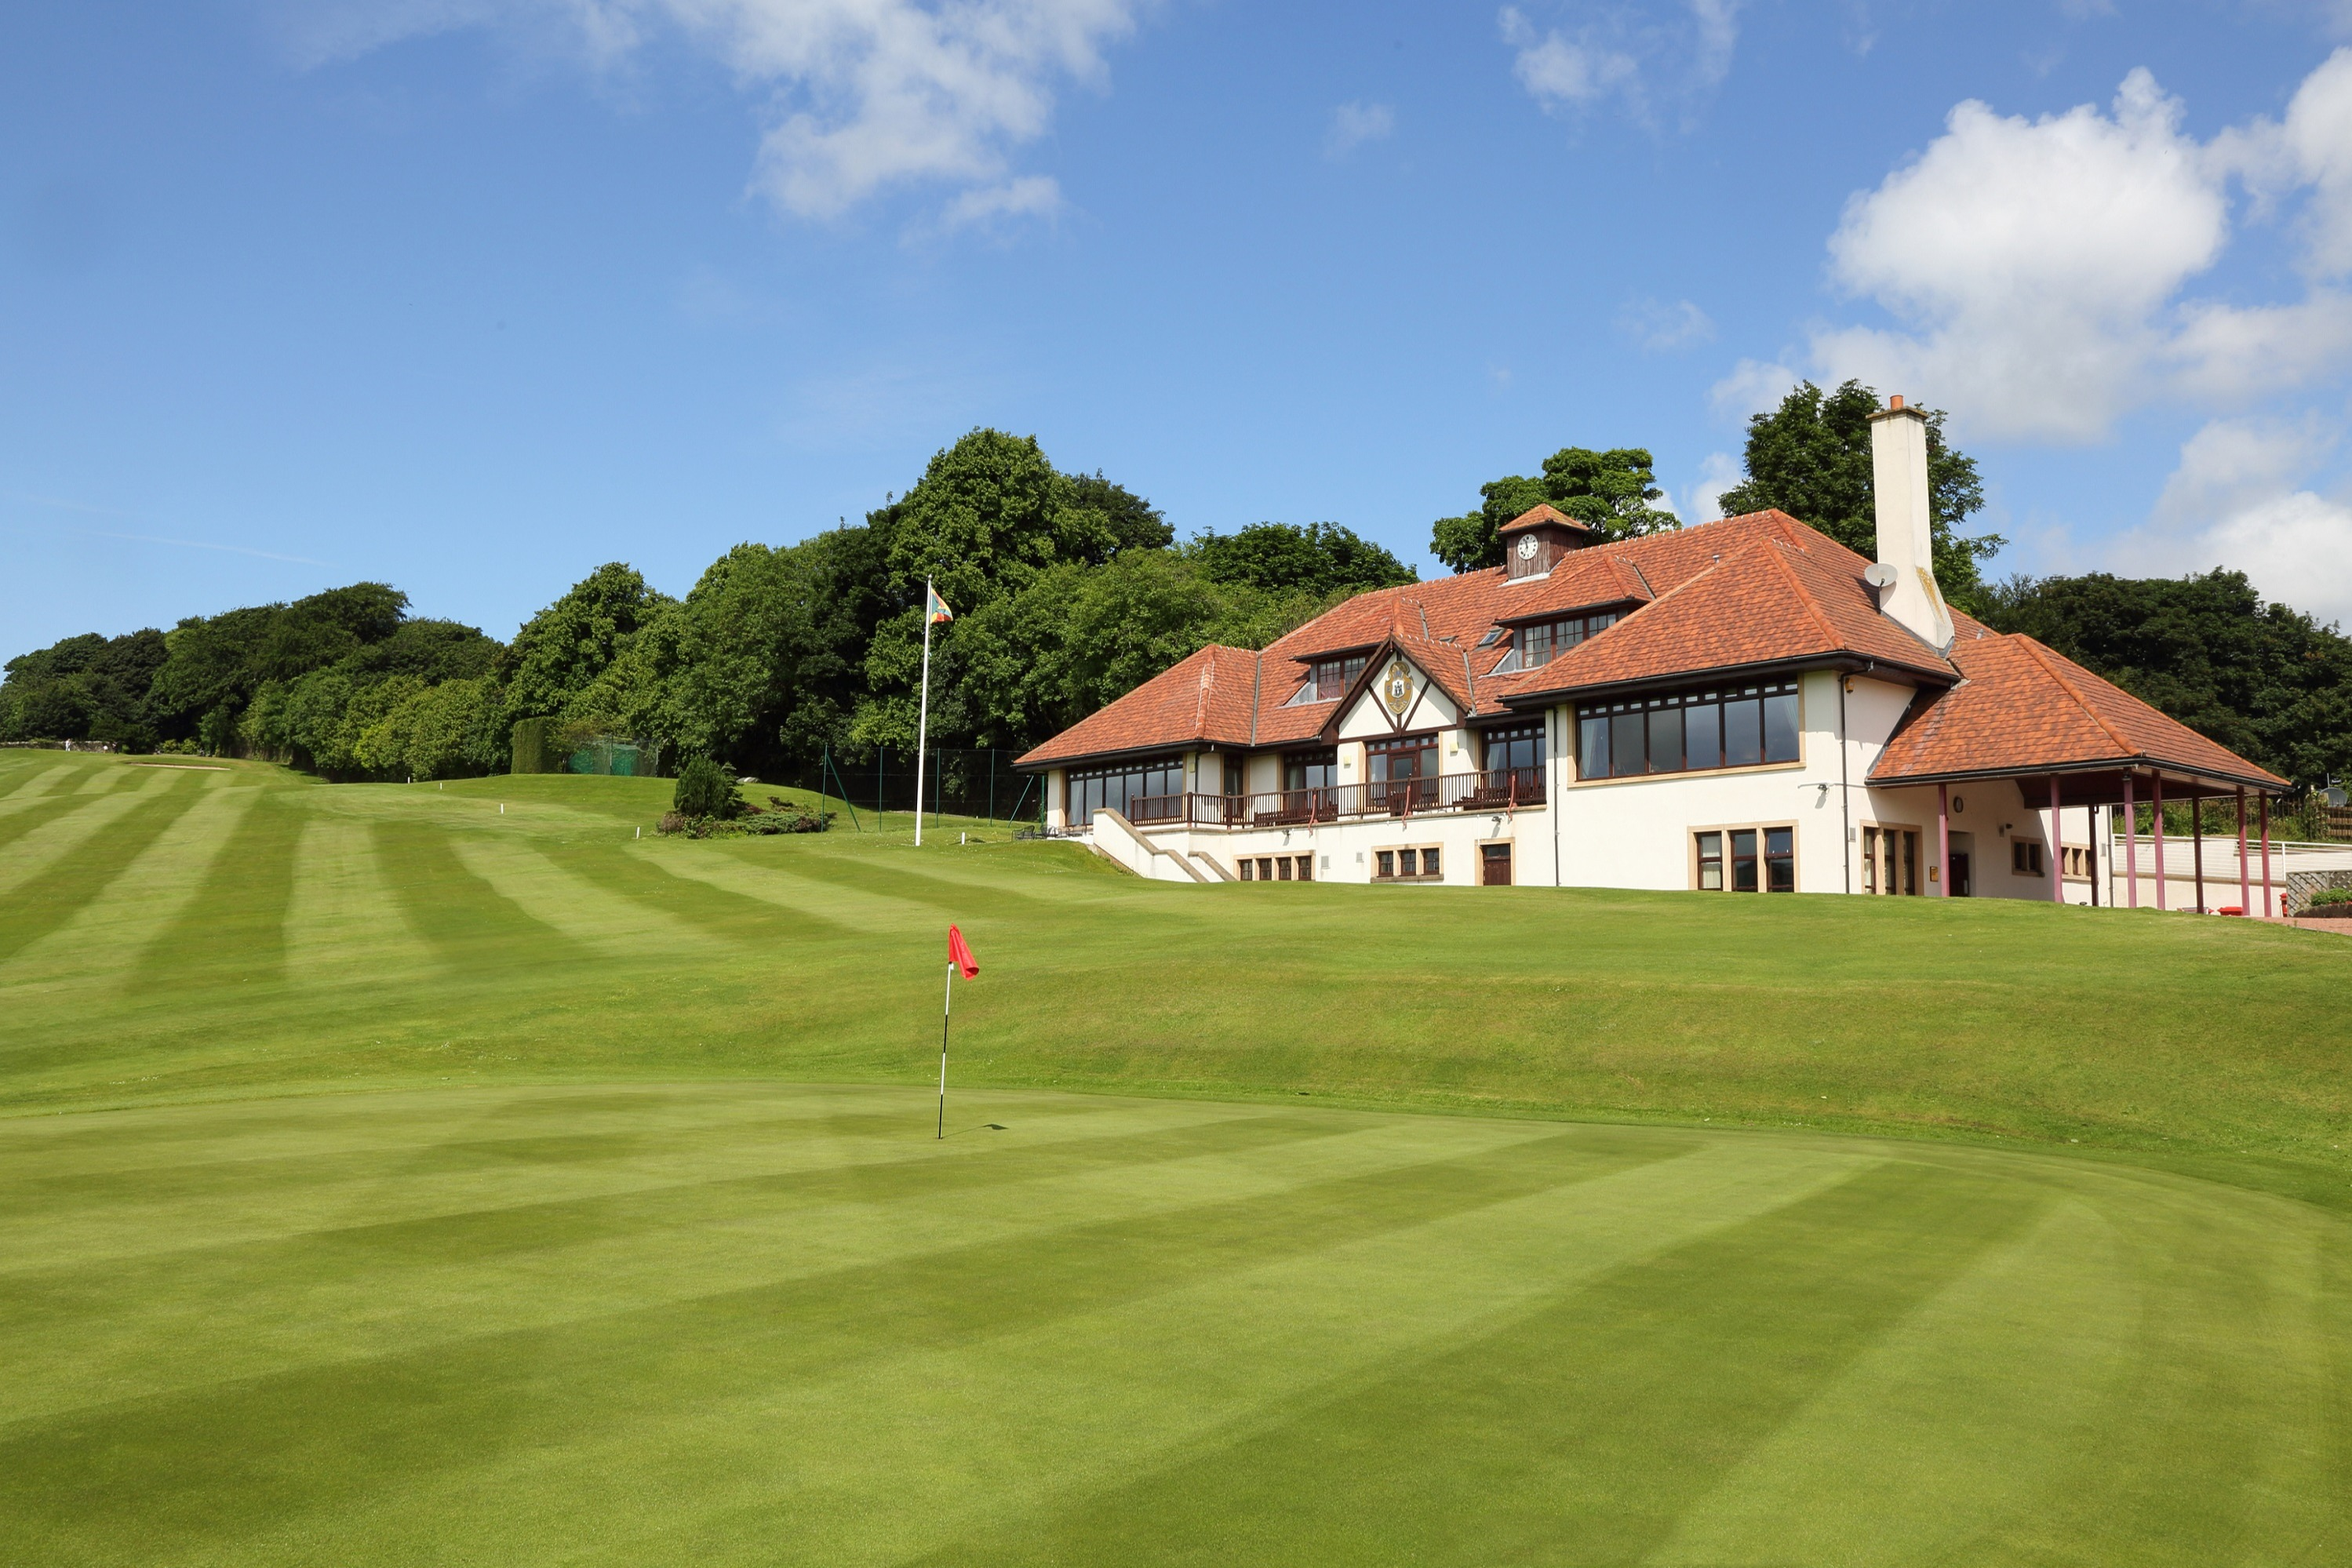 18th green next to the clubhouse